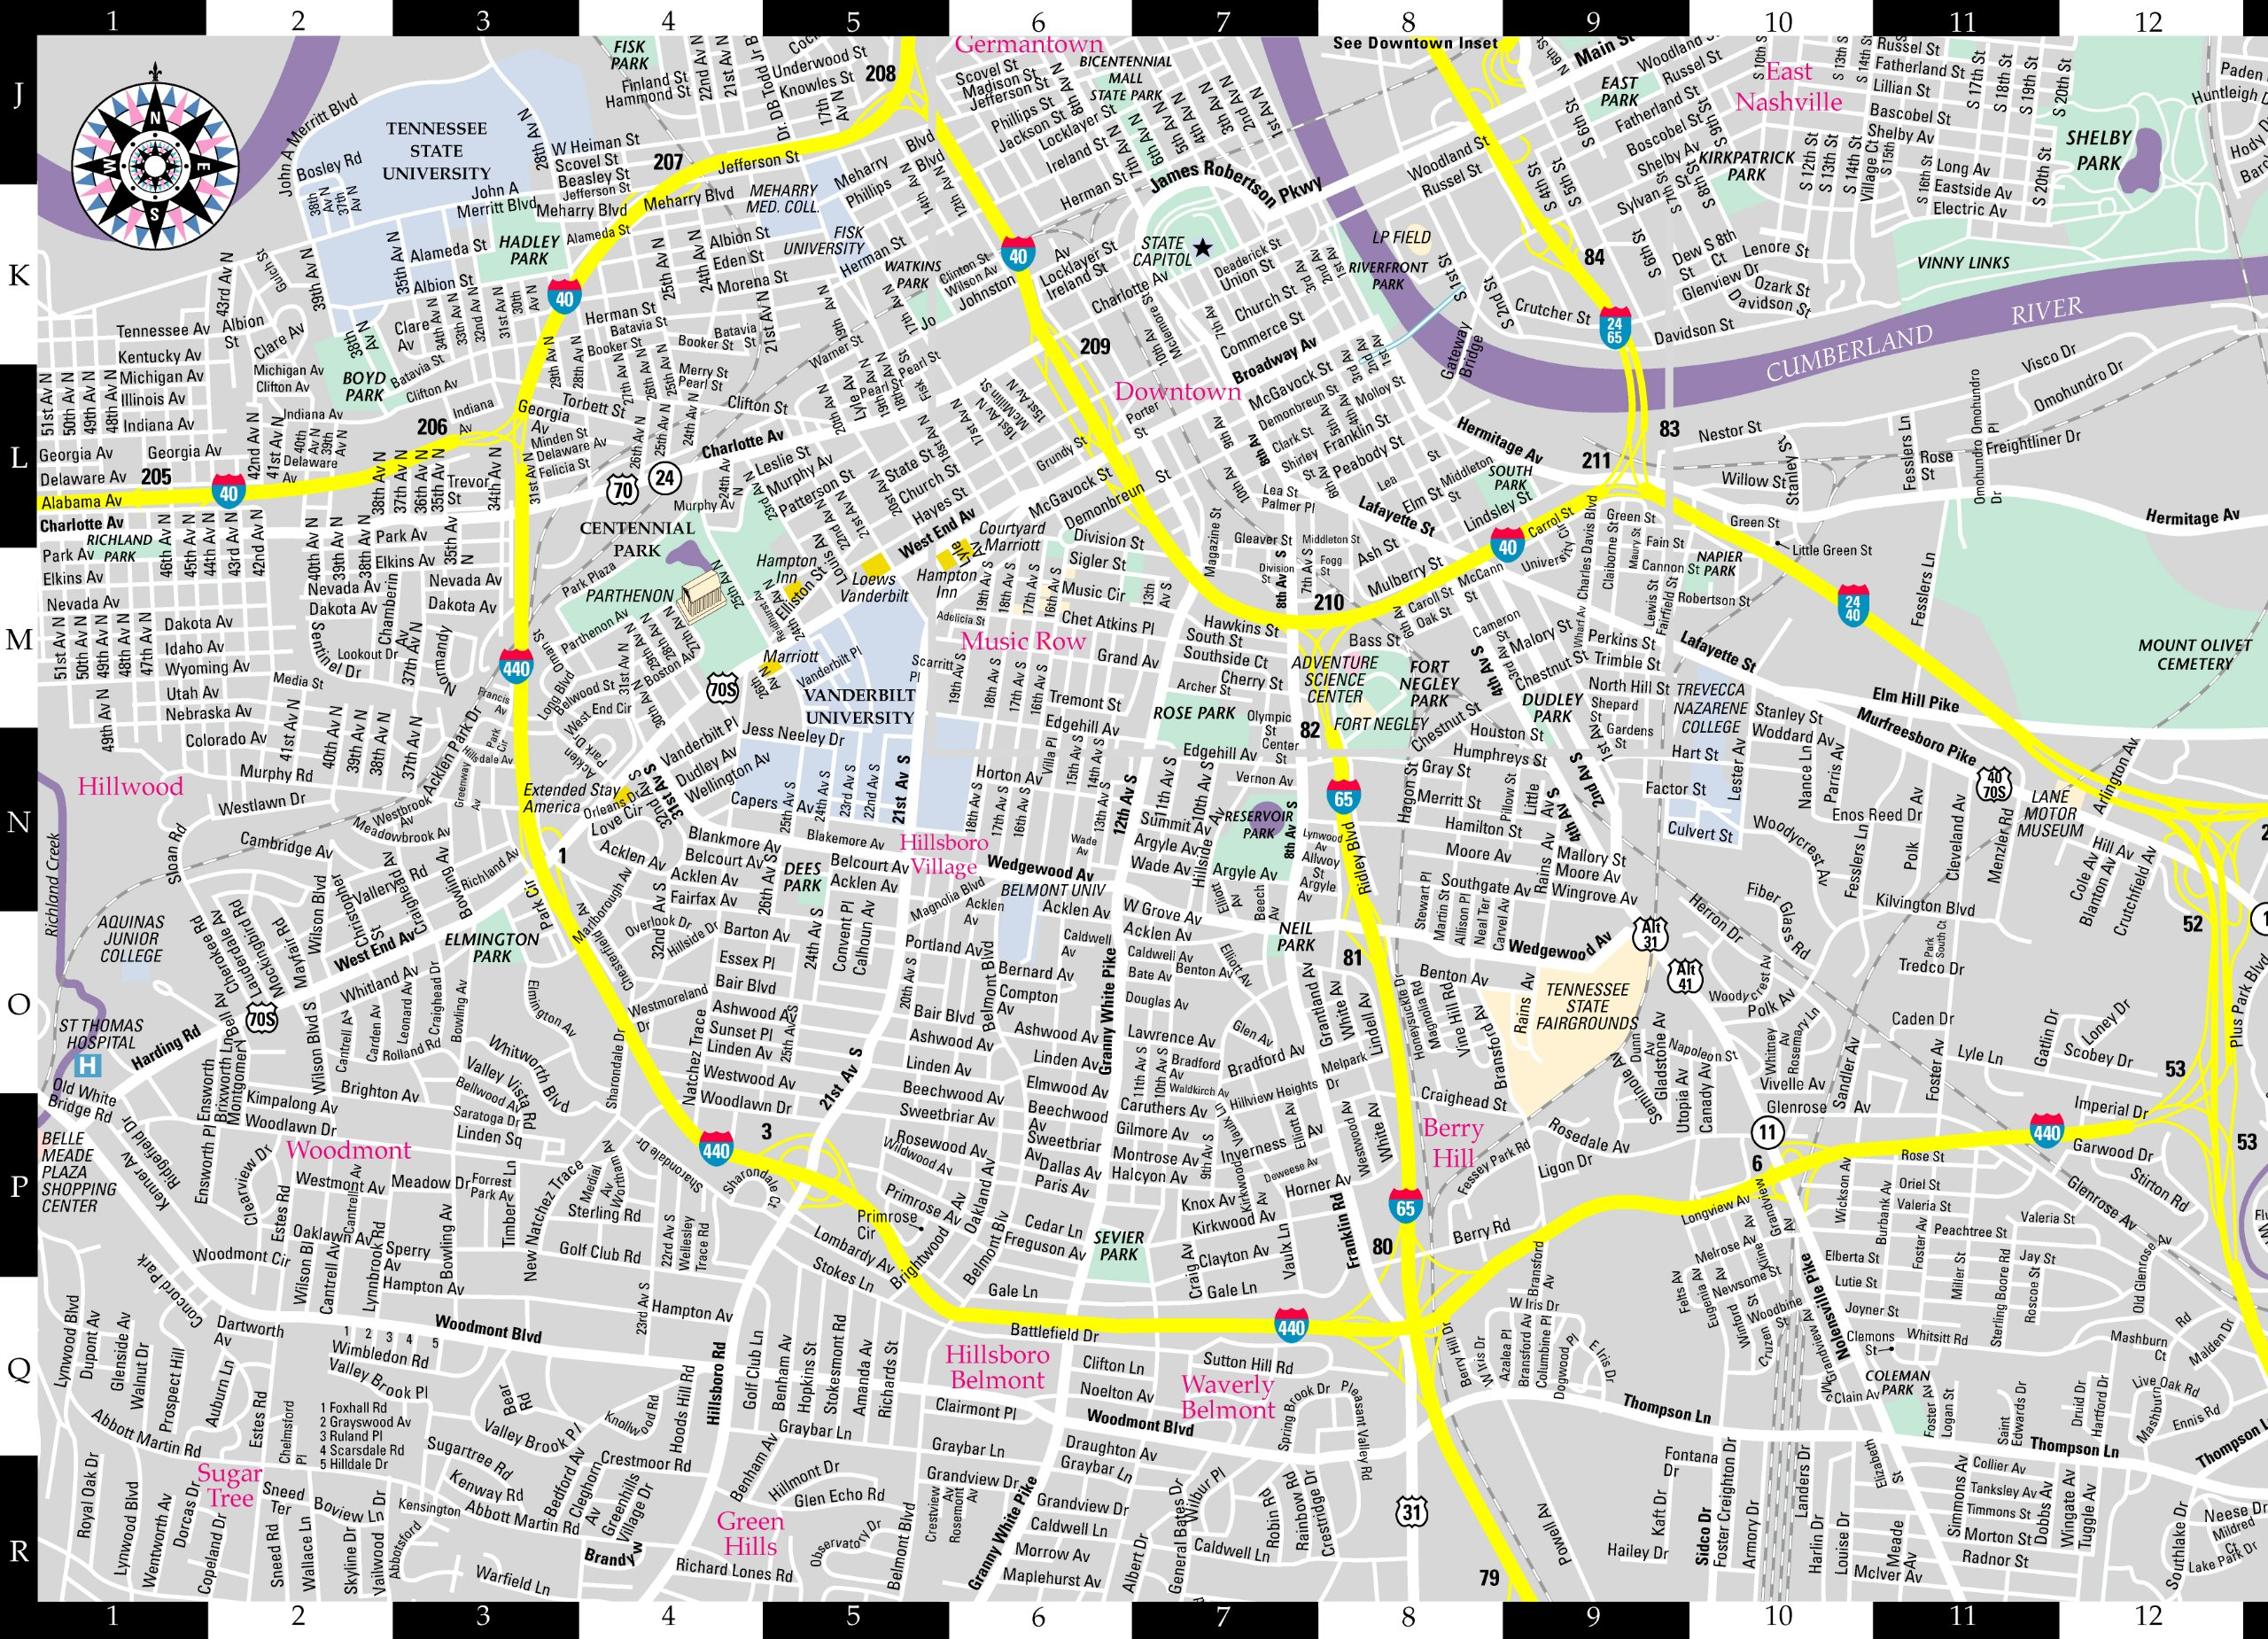 Streetwise Nashville Map Laminated City Center Street Map of – Tourist Map Of Nashville